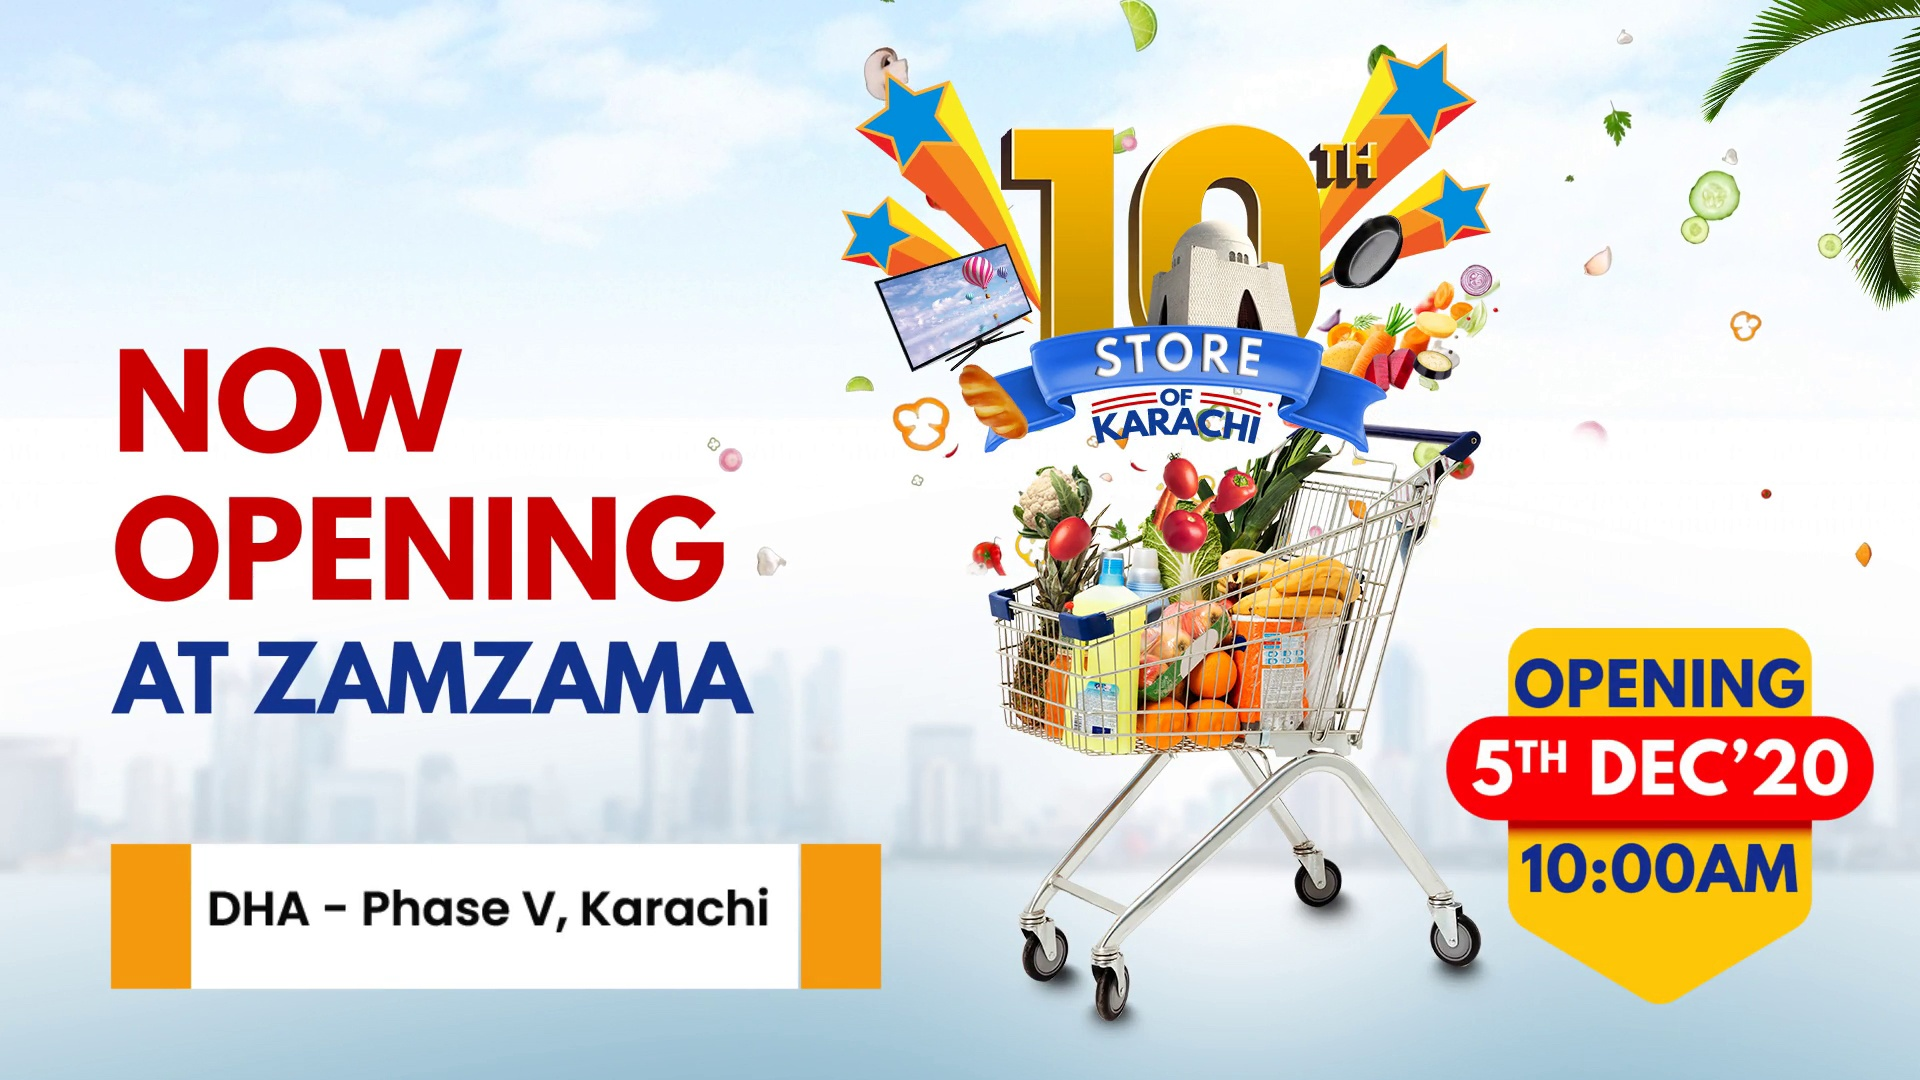 The city of lights welcomes Imtiaz Mega Zamzama, 10th store of Imtiaz in Karachi!